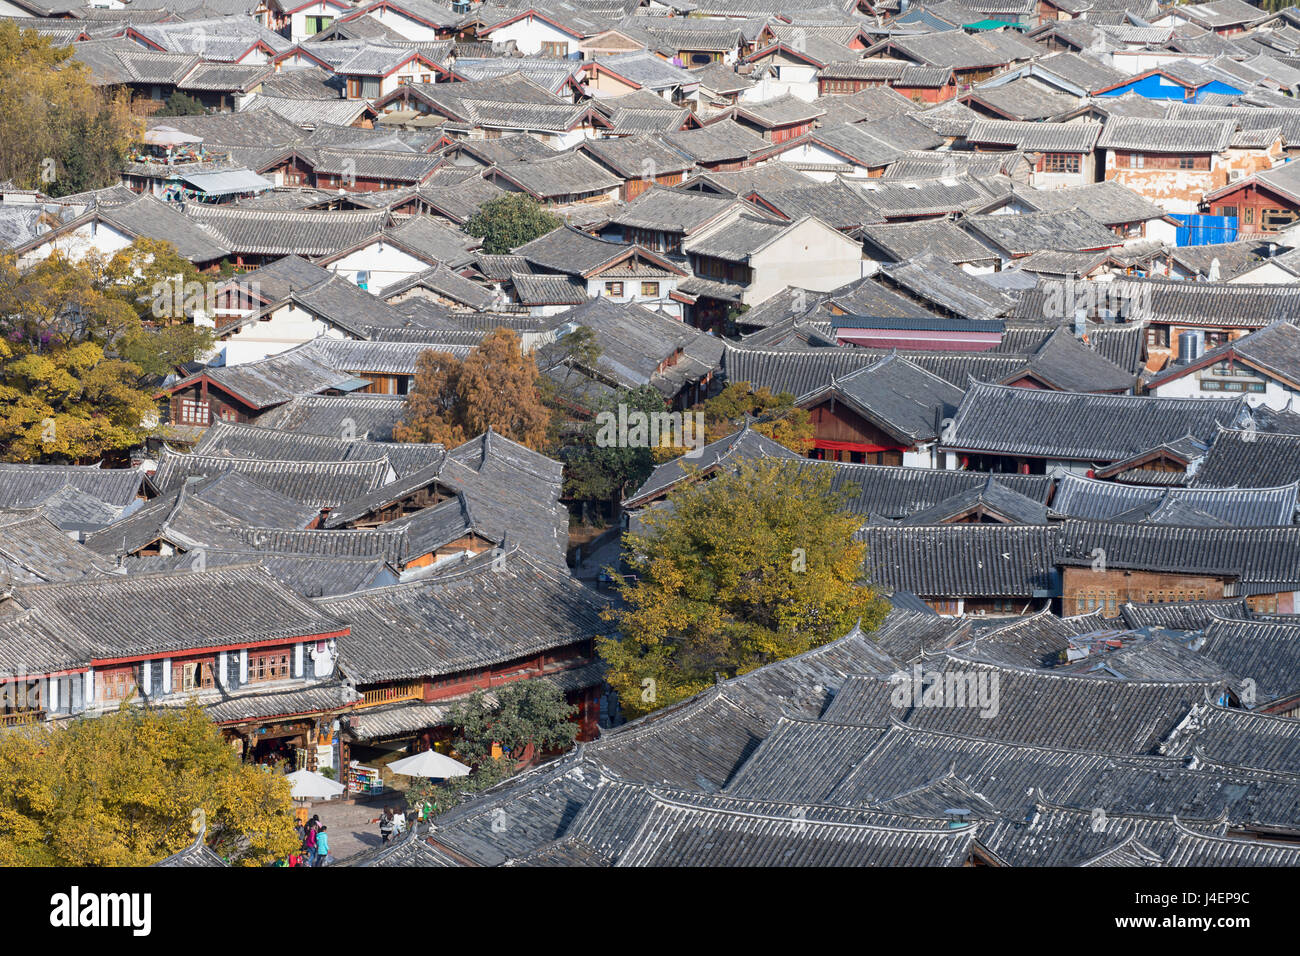 View of Lijiang, UNESCO World Heritage Site, Yunnan, China, Asia - Stock Image